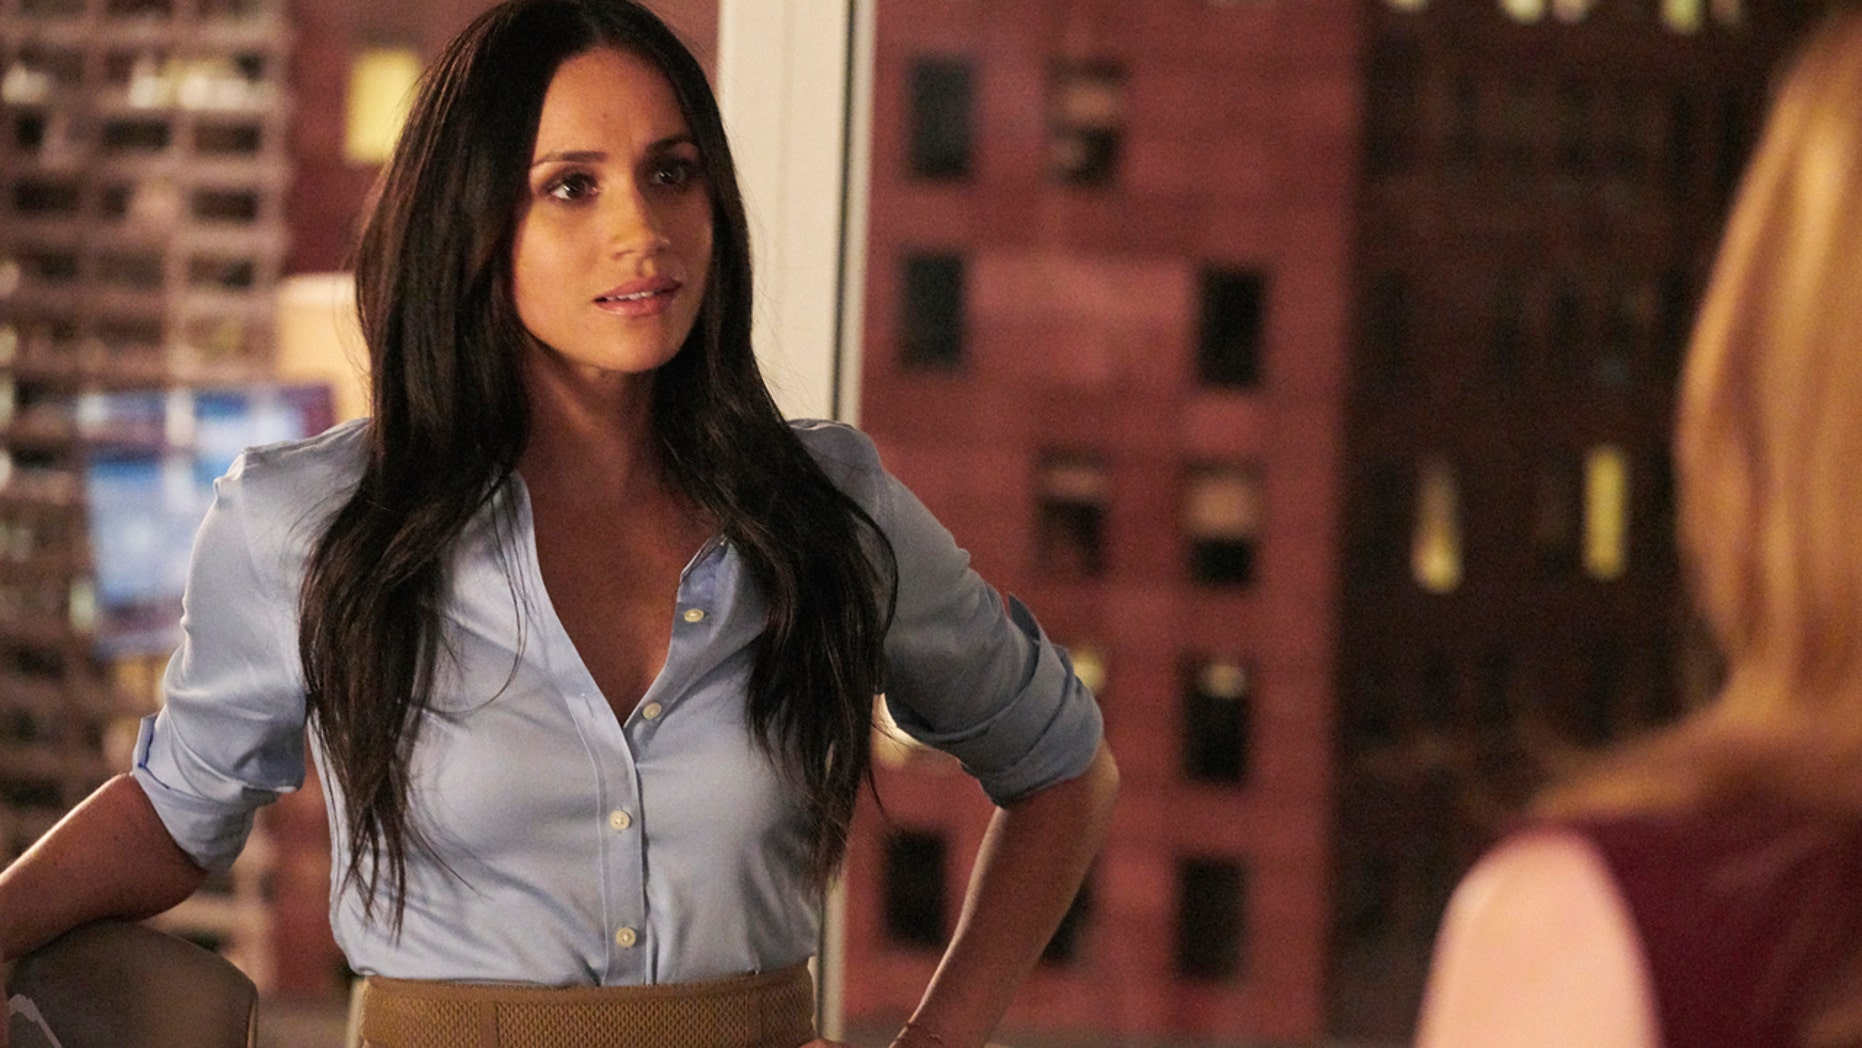 Meghan Markle doesn't hold back her sexy side in a resurfaced video shoot for Men's Health magazine.